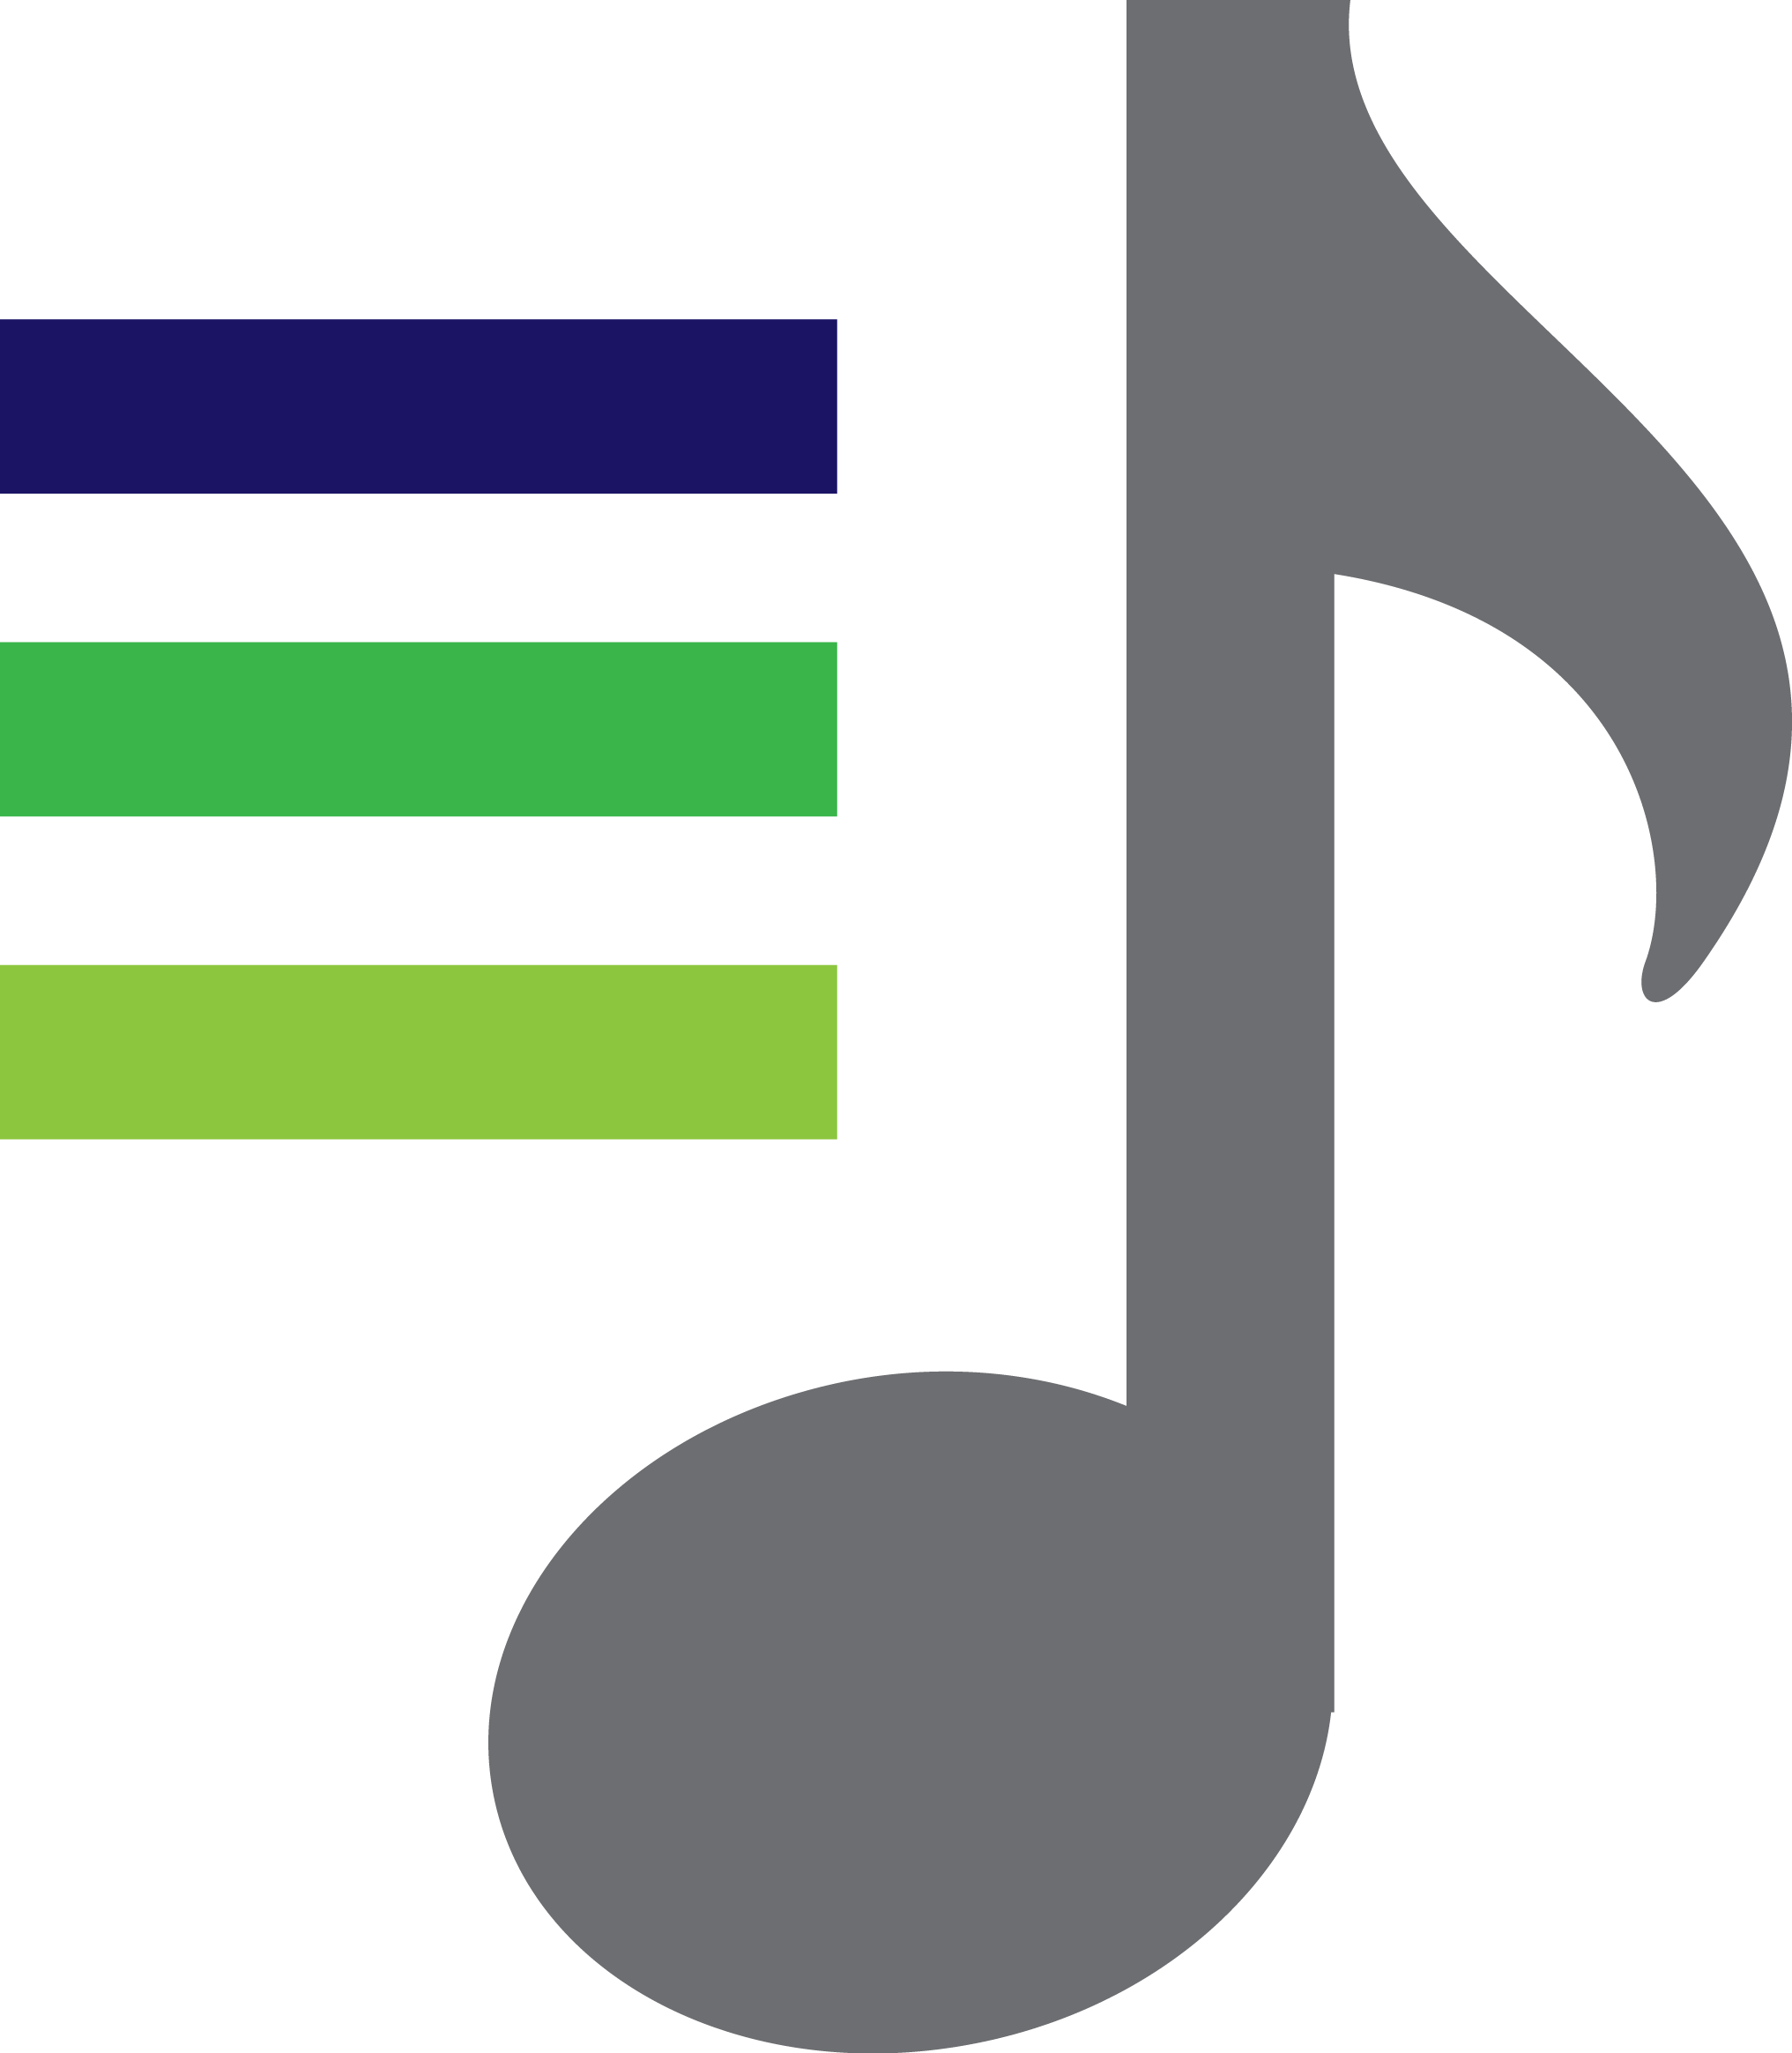 Music Green.png